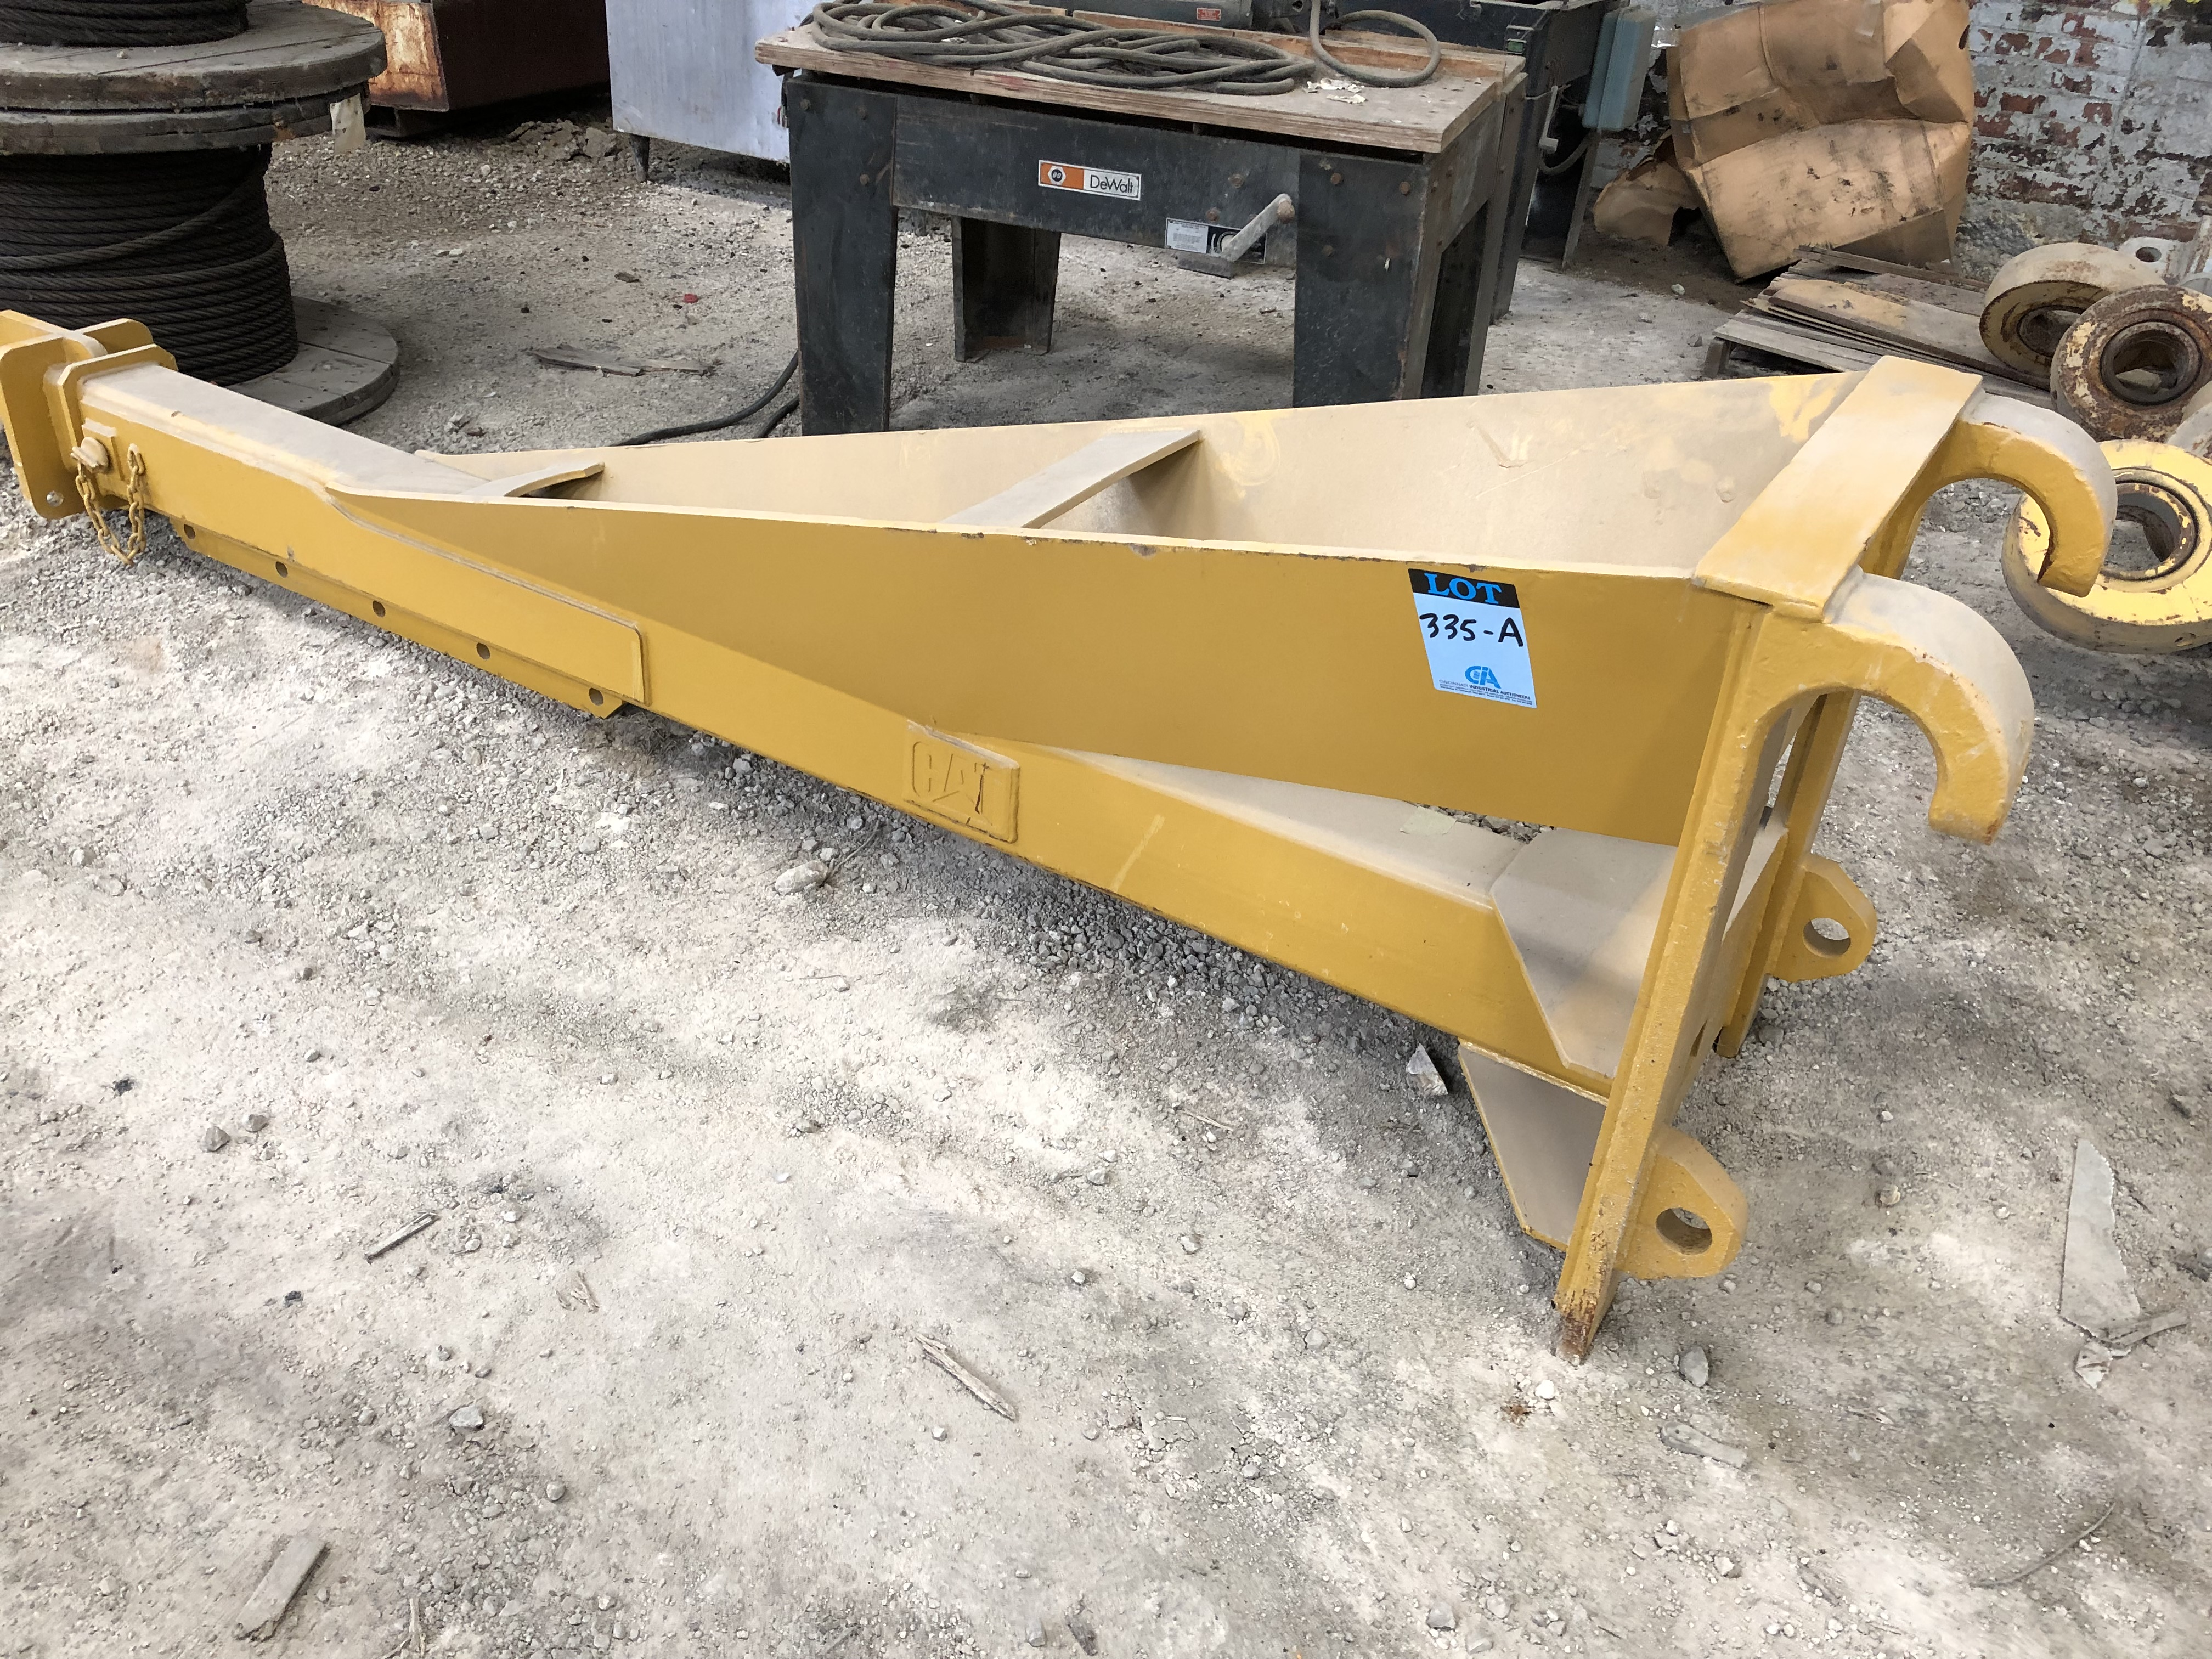 Day 1 - Allied Consolidated Industries, Inc. - Huge Two-Day Auction of Extremely Well-Maintained Erecting and Demolition Equipment